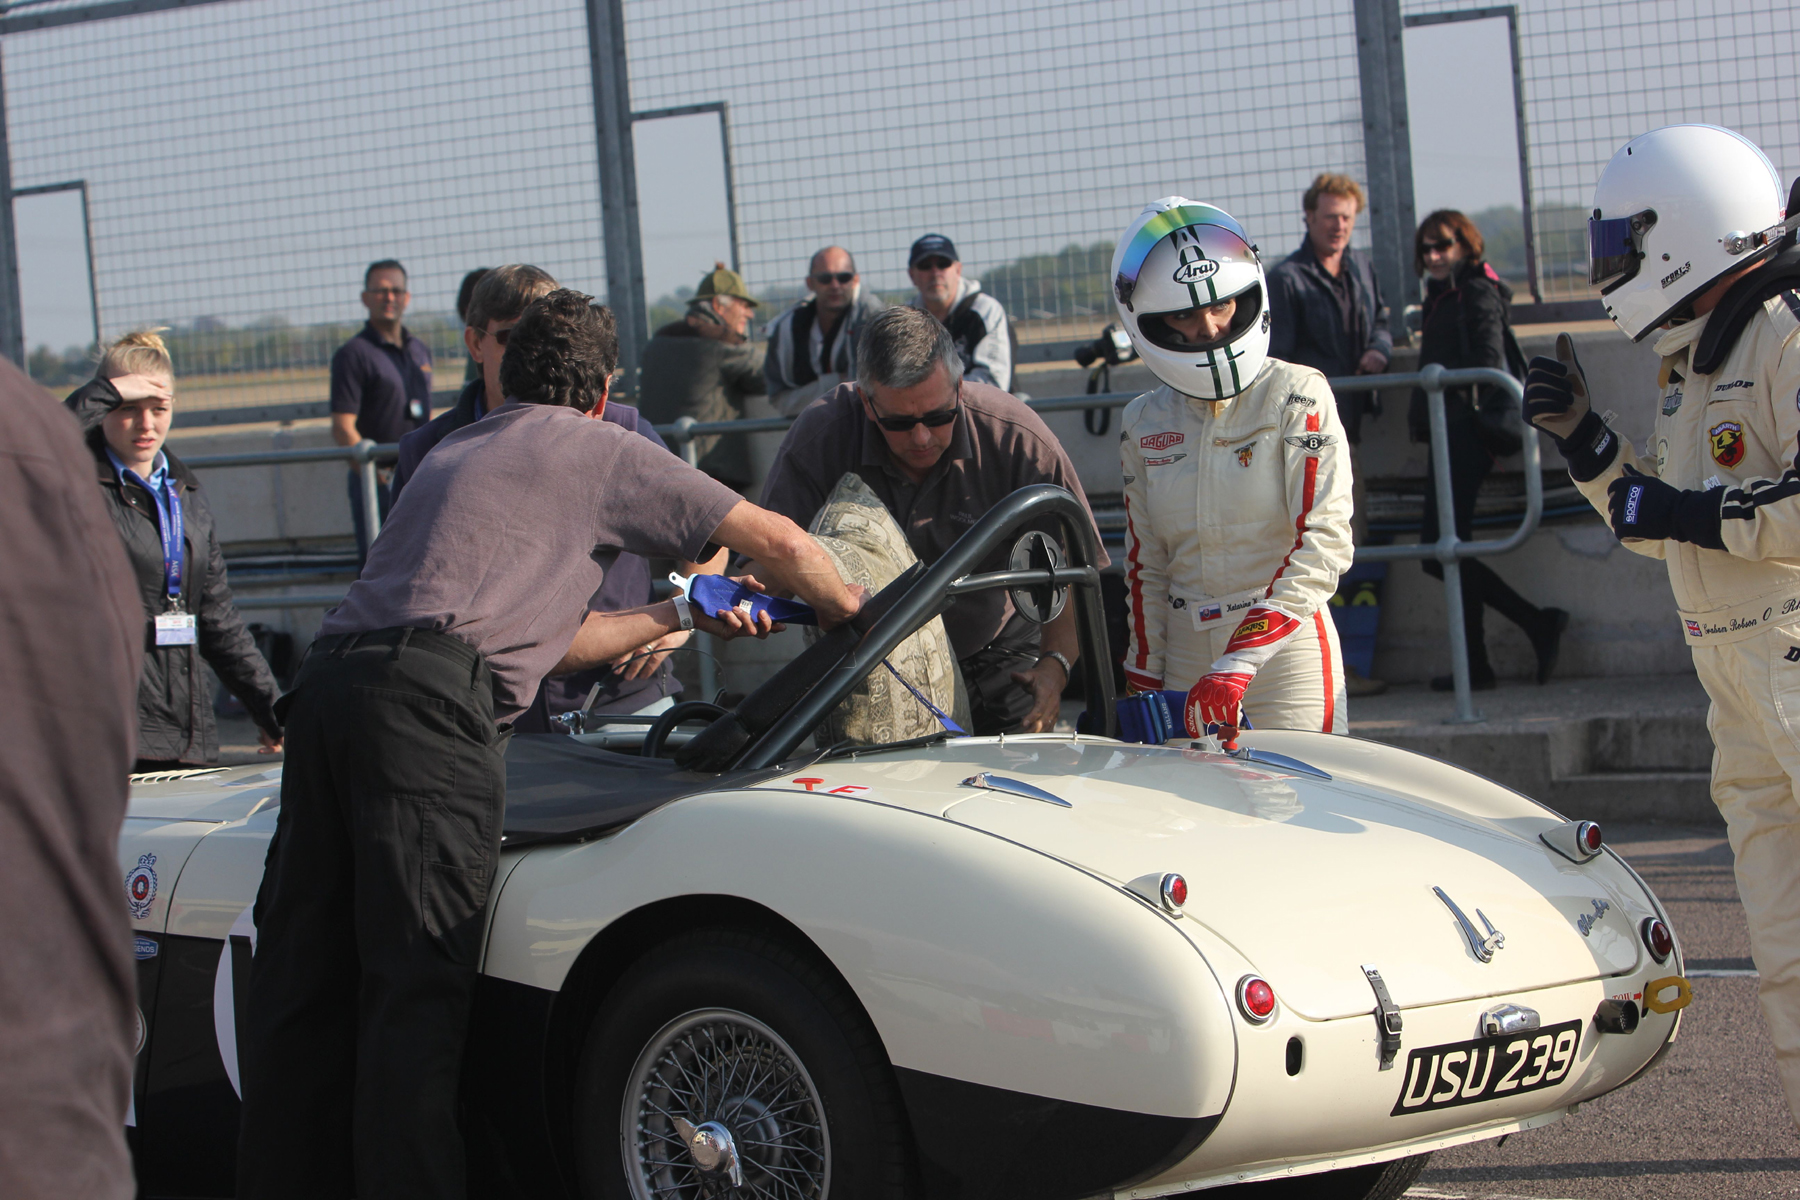 Katarina Kyvlova listens to some sage words from car owner Graham Robson before she replaces him in the hot seat  of the Austin Healey 100M. The 'Cool Dude' in shades is Paul Woolmer of Woolmer Classic Engineering, our sponsor and provider of excellent hospitality unit throughout the season.  Photo - Pat Arculus, Tripos Media